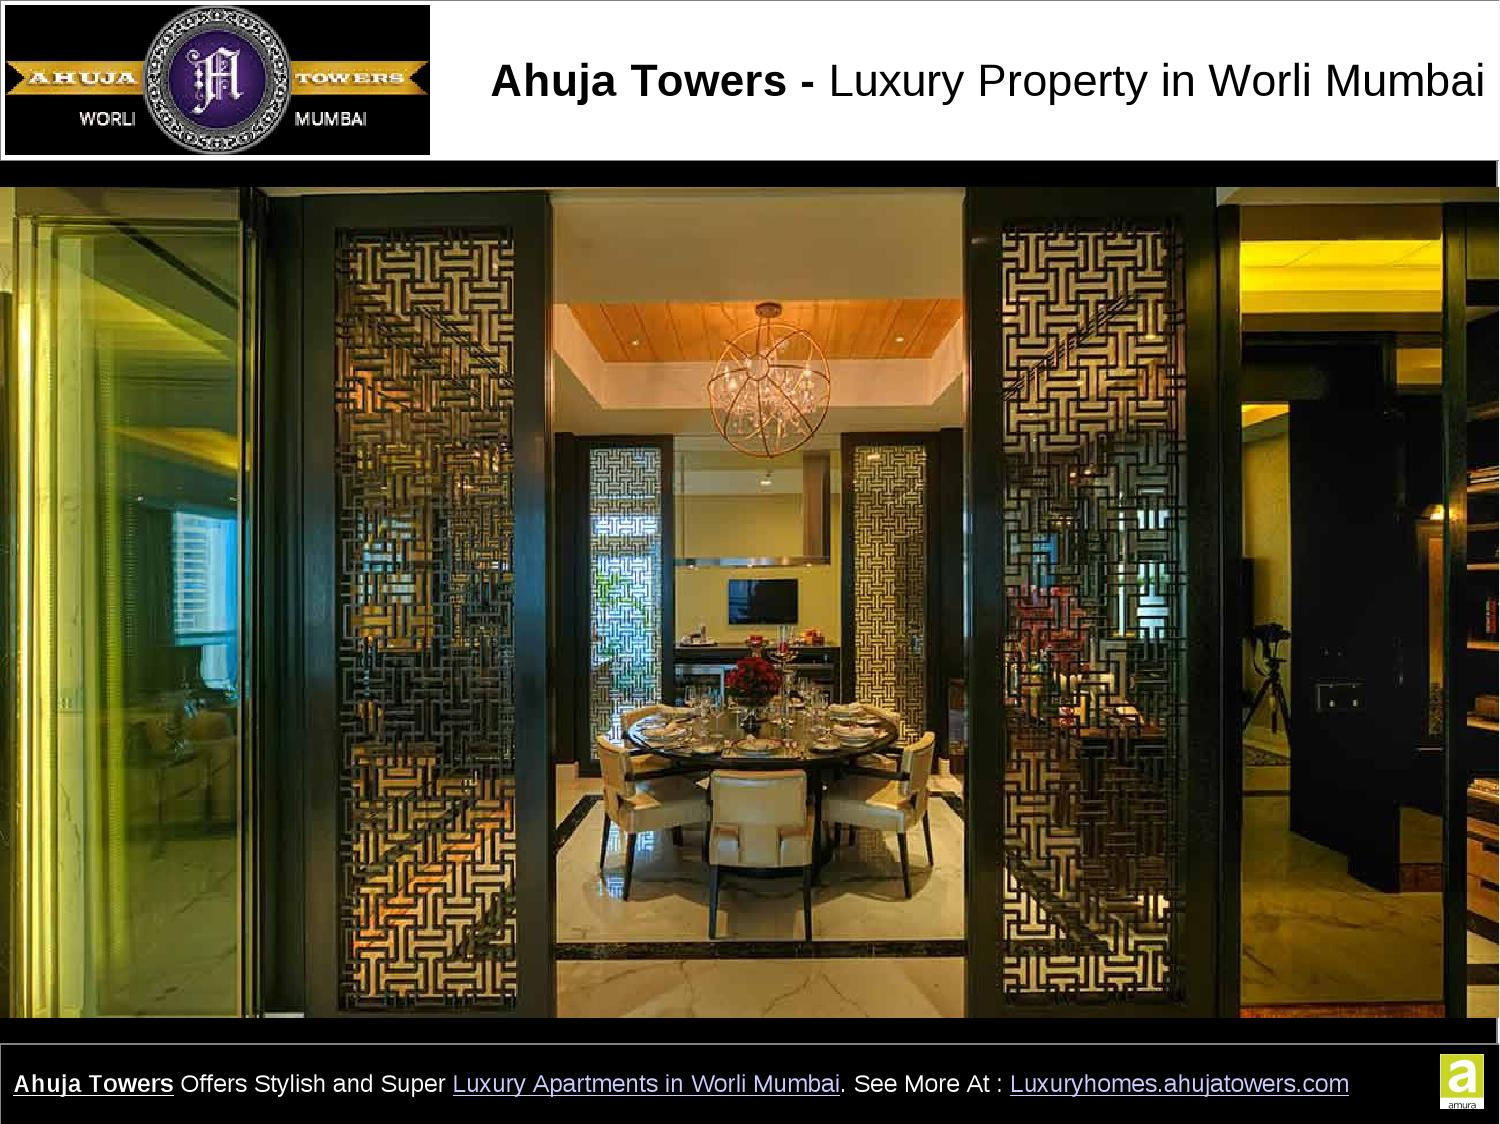 Ahuja Towers Offers Stylish And Super Luxury Property In Worli